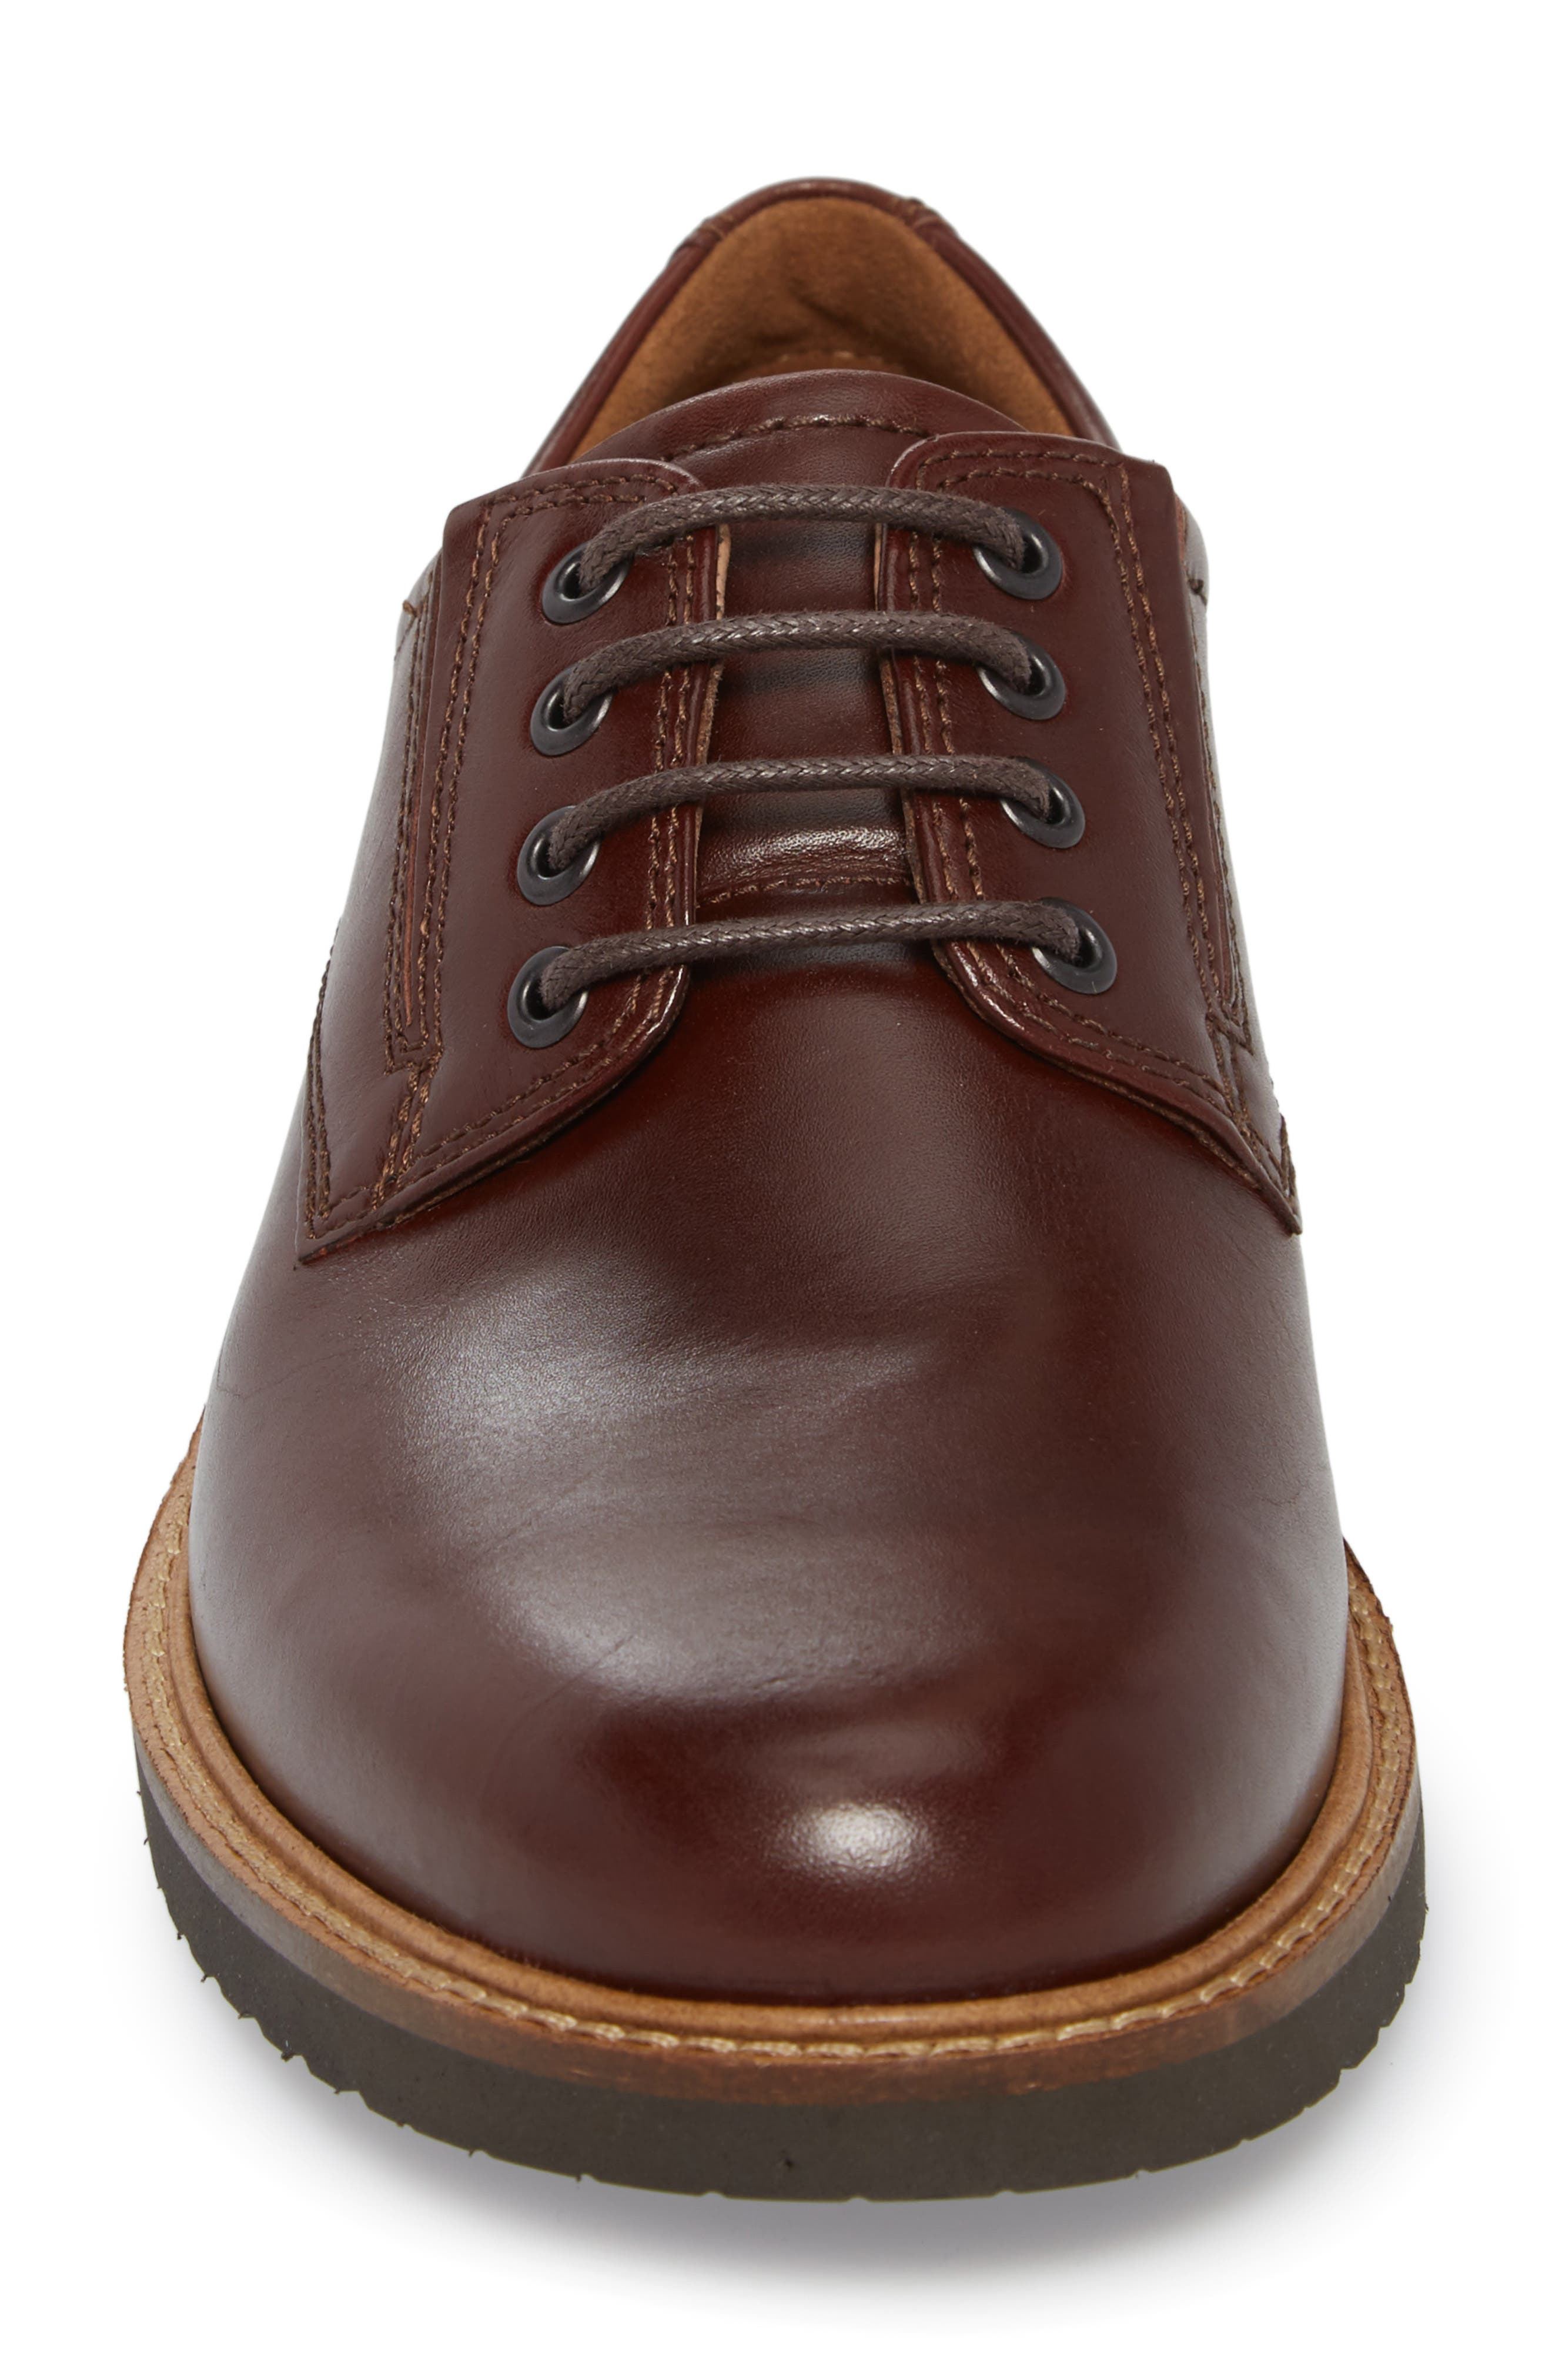 Ian Casual Plain Toe Derby,                             Alternate thumbnail 4, color,                             Mink Leather